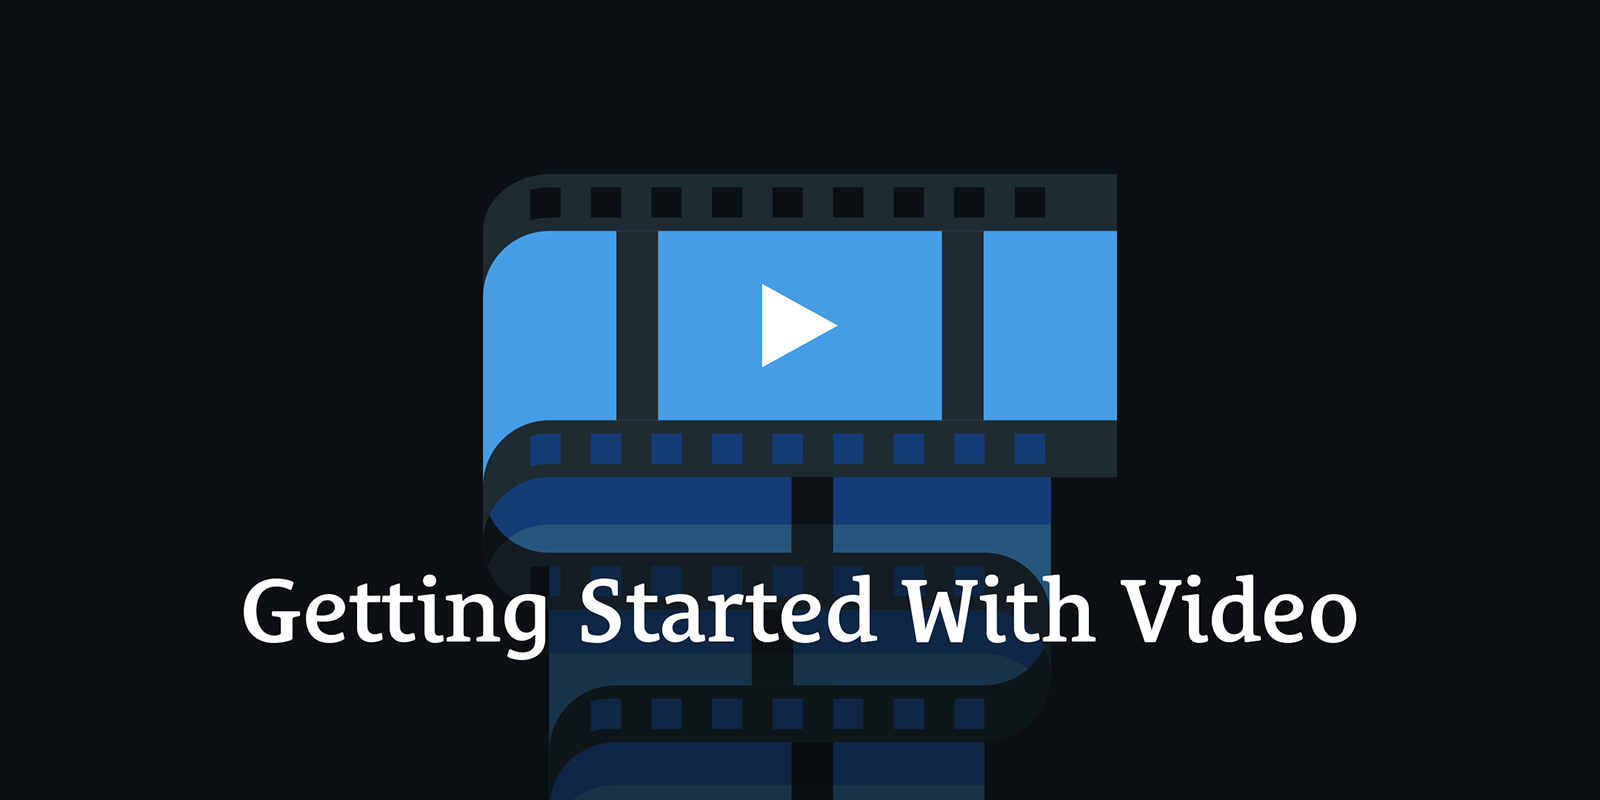 Getting Started With Video